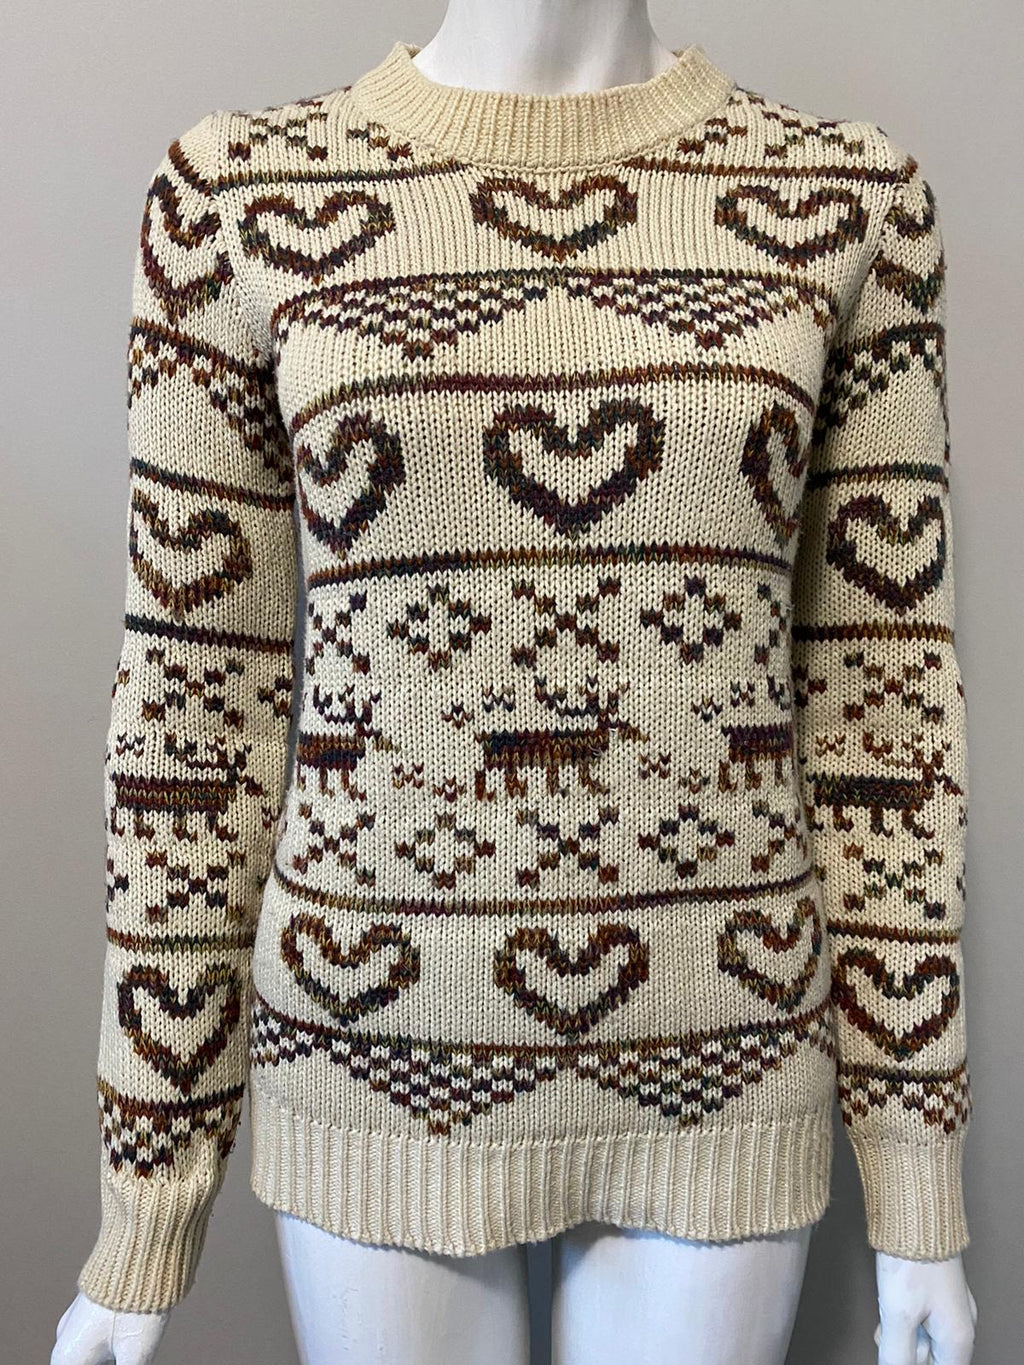 QED London Brown Reindeer Print Sweater Size M